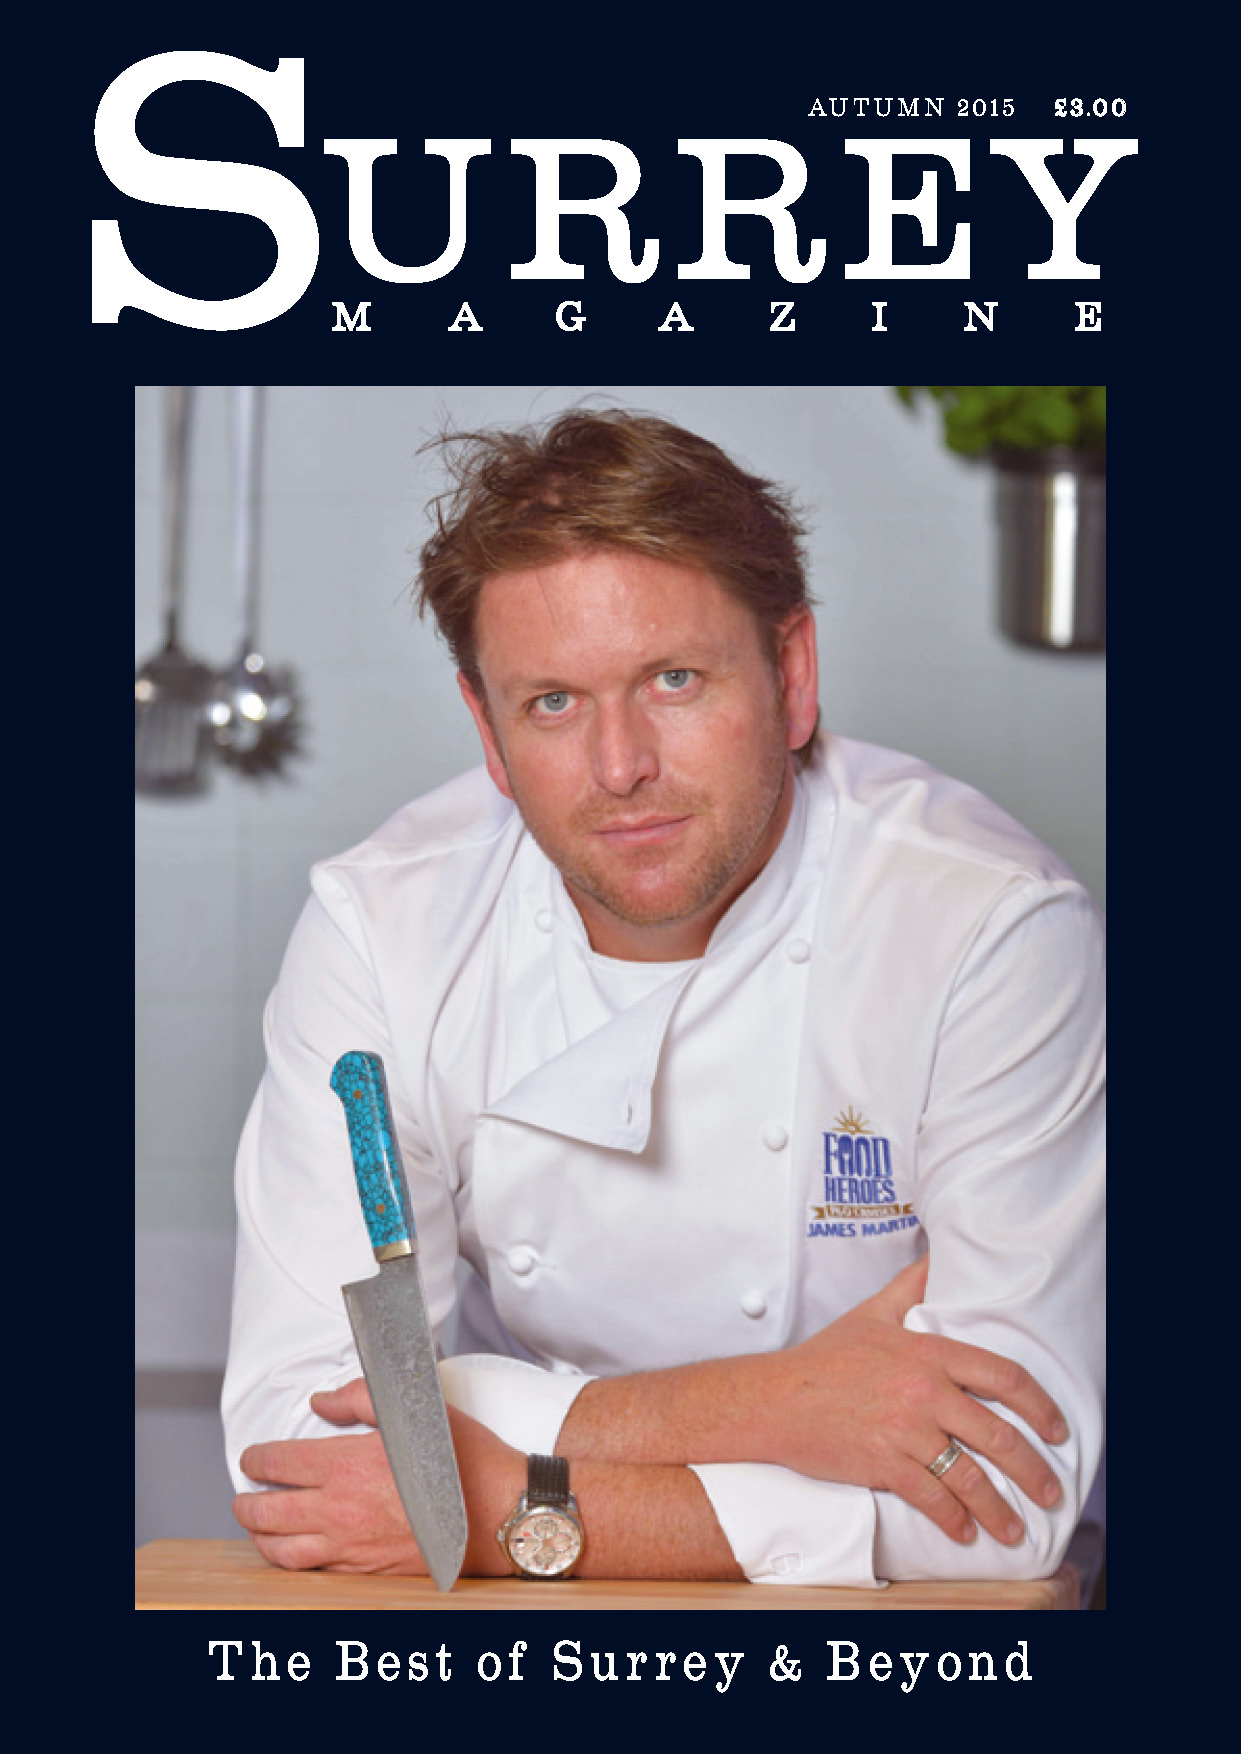 Surrey Magazine - Autumn 2015 edition